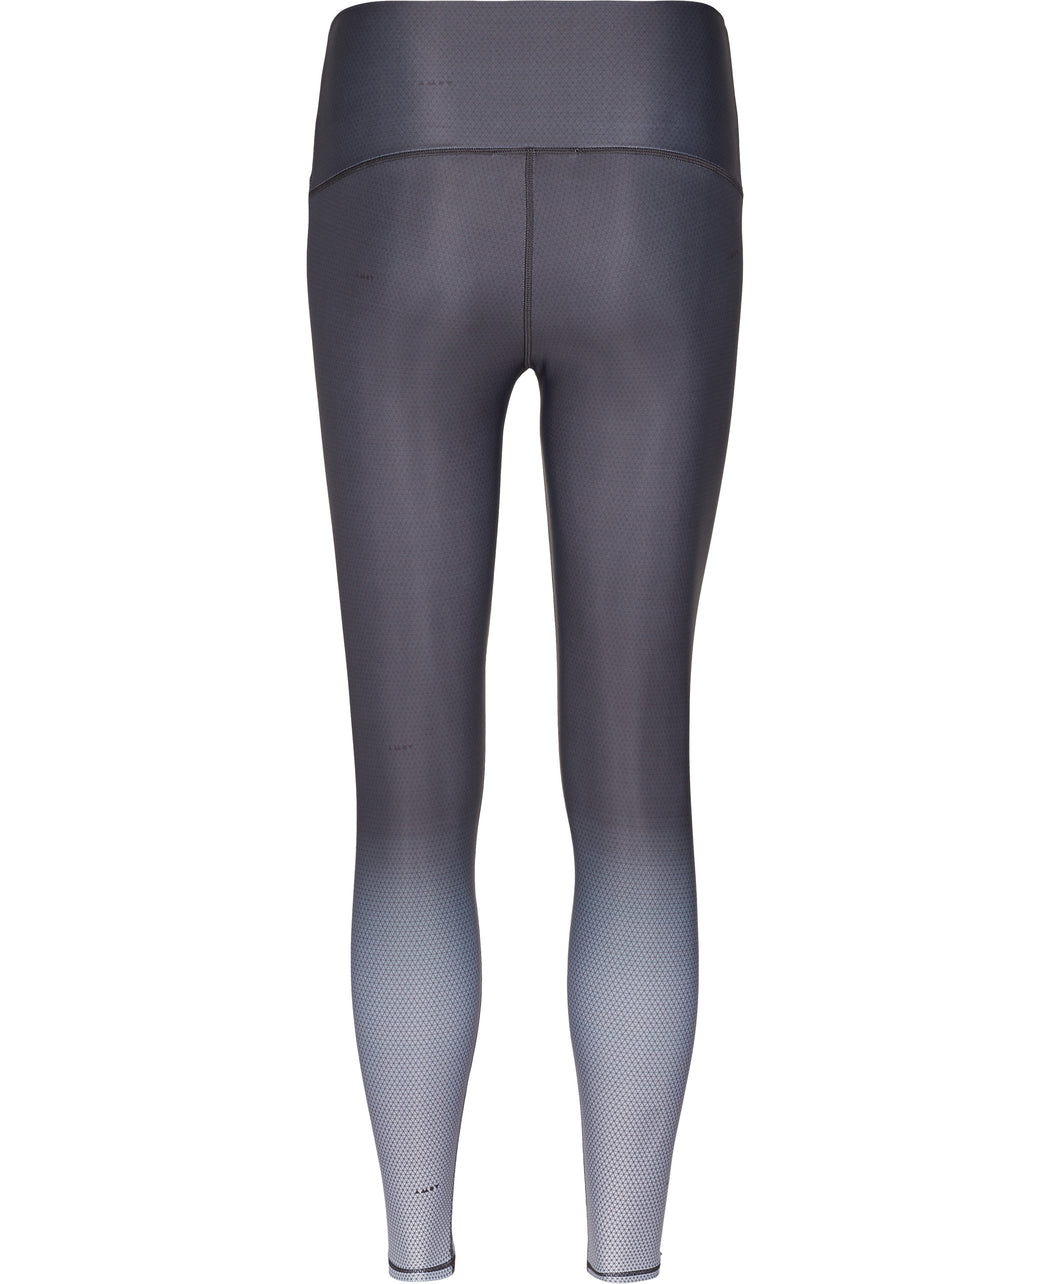 Amov Grid Leggings Grey